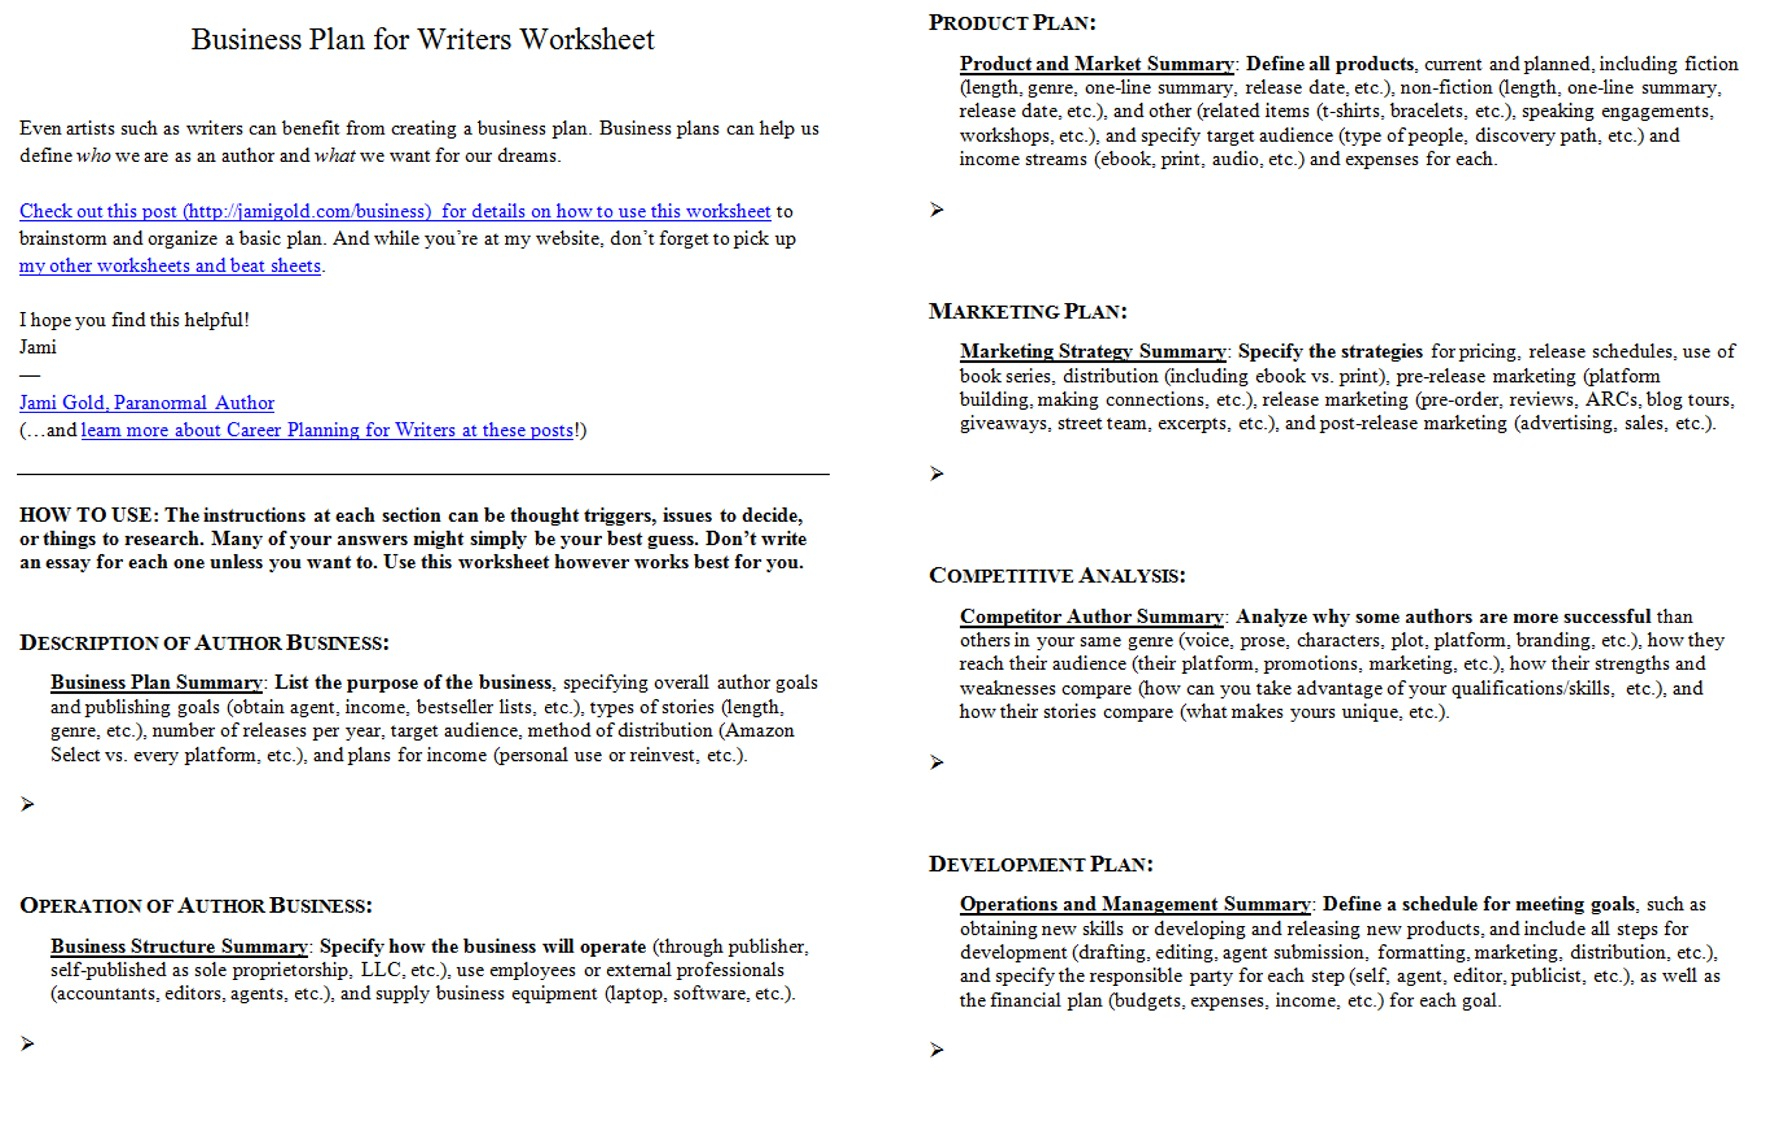 Aldiablosus  Seductive Worksheets For Writers  Jami Gold Paranormal Author With Heavenly Screen Shot Of Both Pages Of The Business Plan For Writers Worksheet With Breathtaking Solar System Free Worksheets Also Online Math Worksheet Generator In Addition Prewriting Worksheets Middle School And Sample Space Diagram Worksheet As Well As Writing Worksheets Grade  Additionally Double Digit By Single Digit Multiplication Worksheets From Jamigoldcom With Aldiablosus  Heavenly Worksheets For Writers  Jami Gold Paranormal Author With Breathtaking Screen Shot Of Both Pages Of The Business Plan For Writers Worksheet And Seductive Solar System Free Worksheets Also Online Math Worksheet Generator In Addition Prewriting Worksheets Middle School From Jamigoldcom